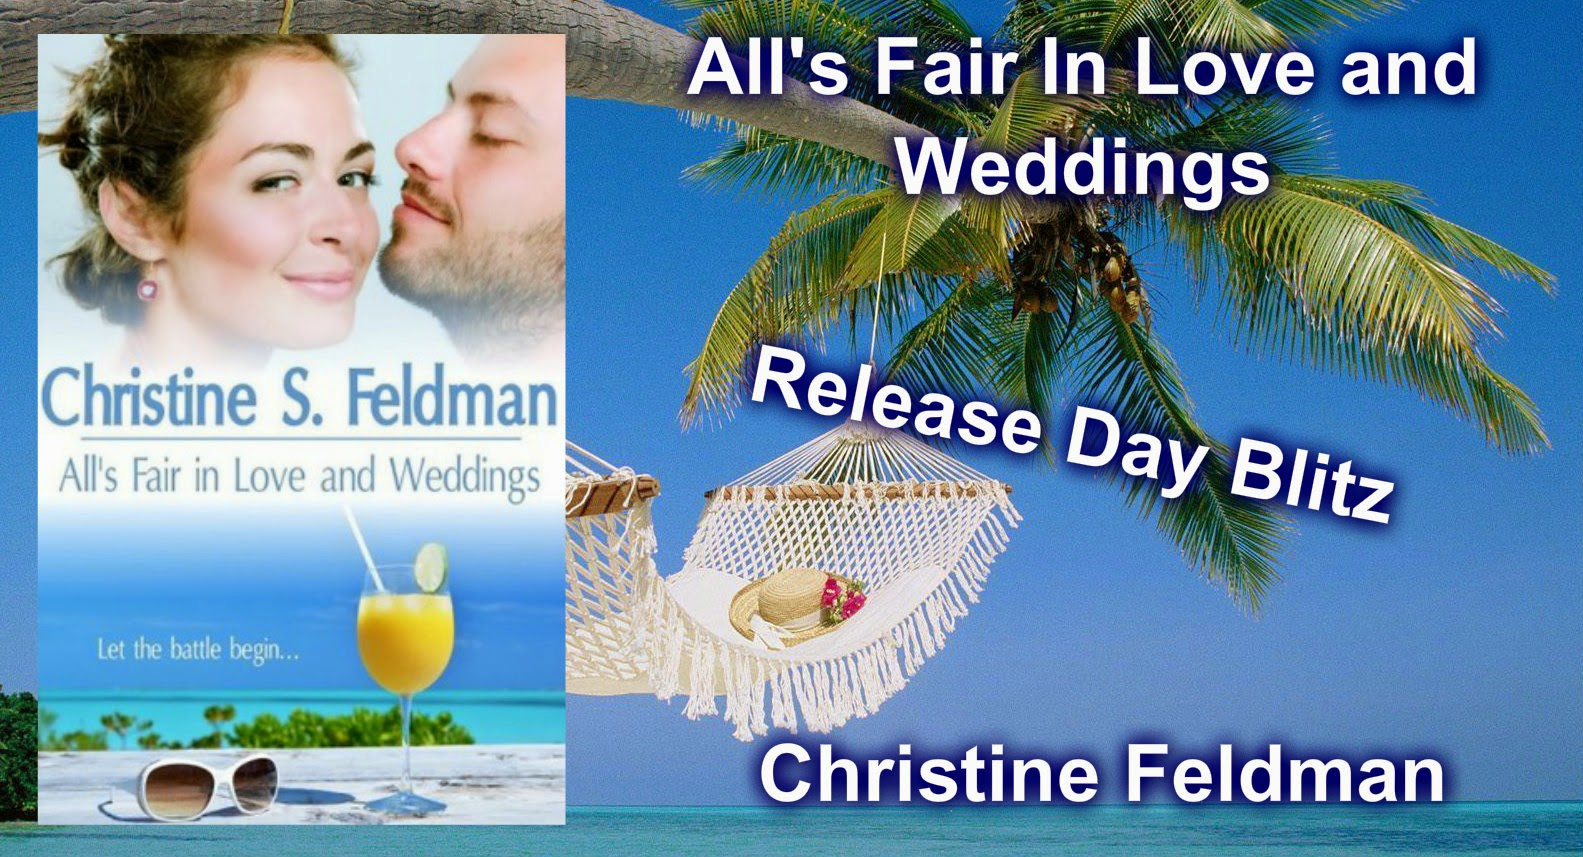 All's Fair In Love and Weddings Release Day Blitz